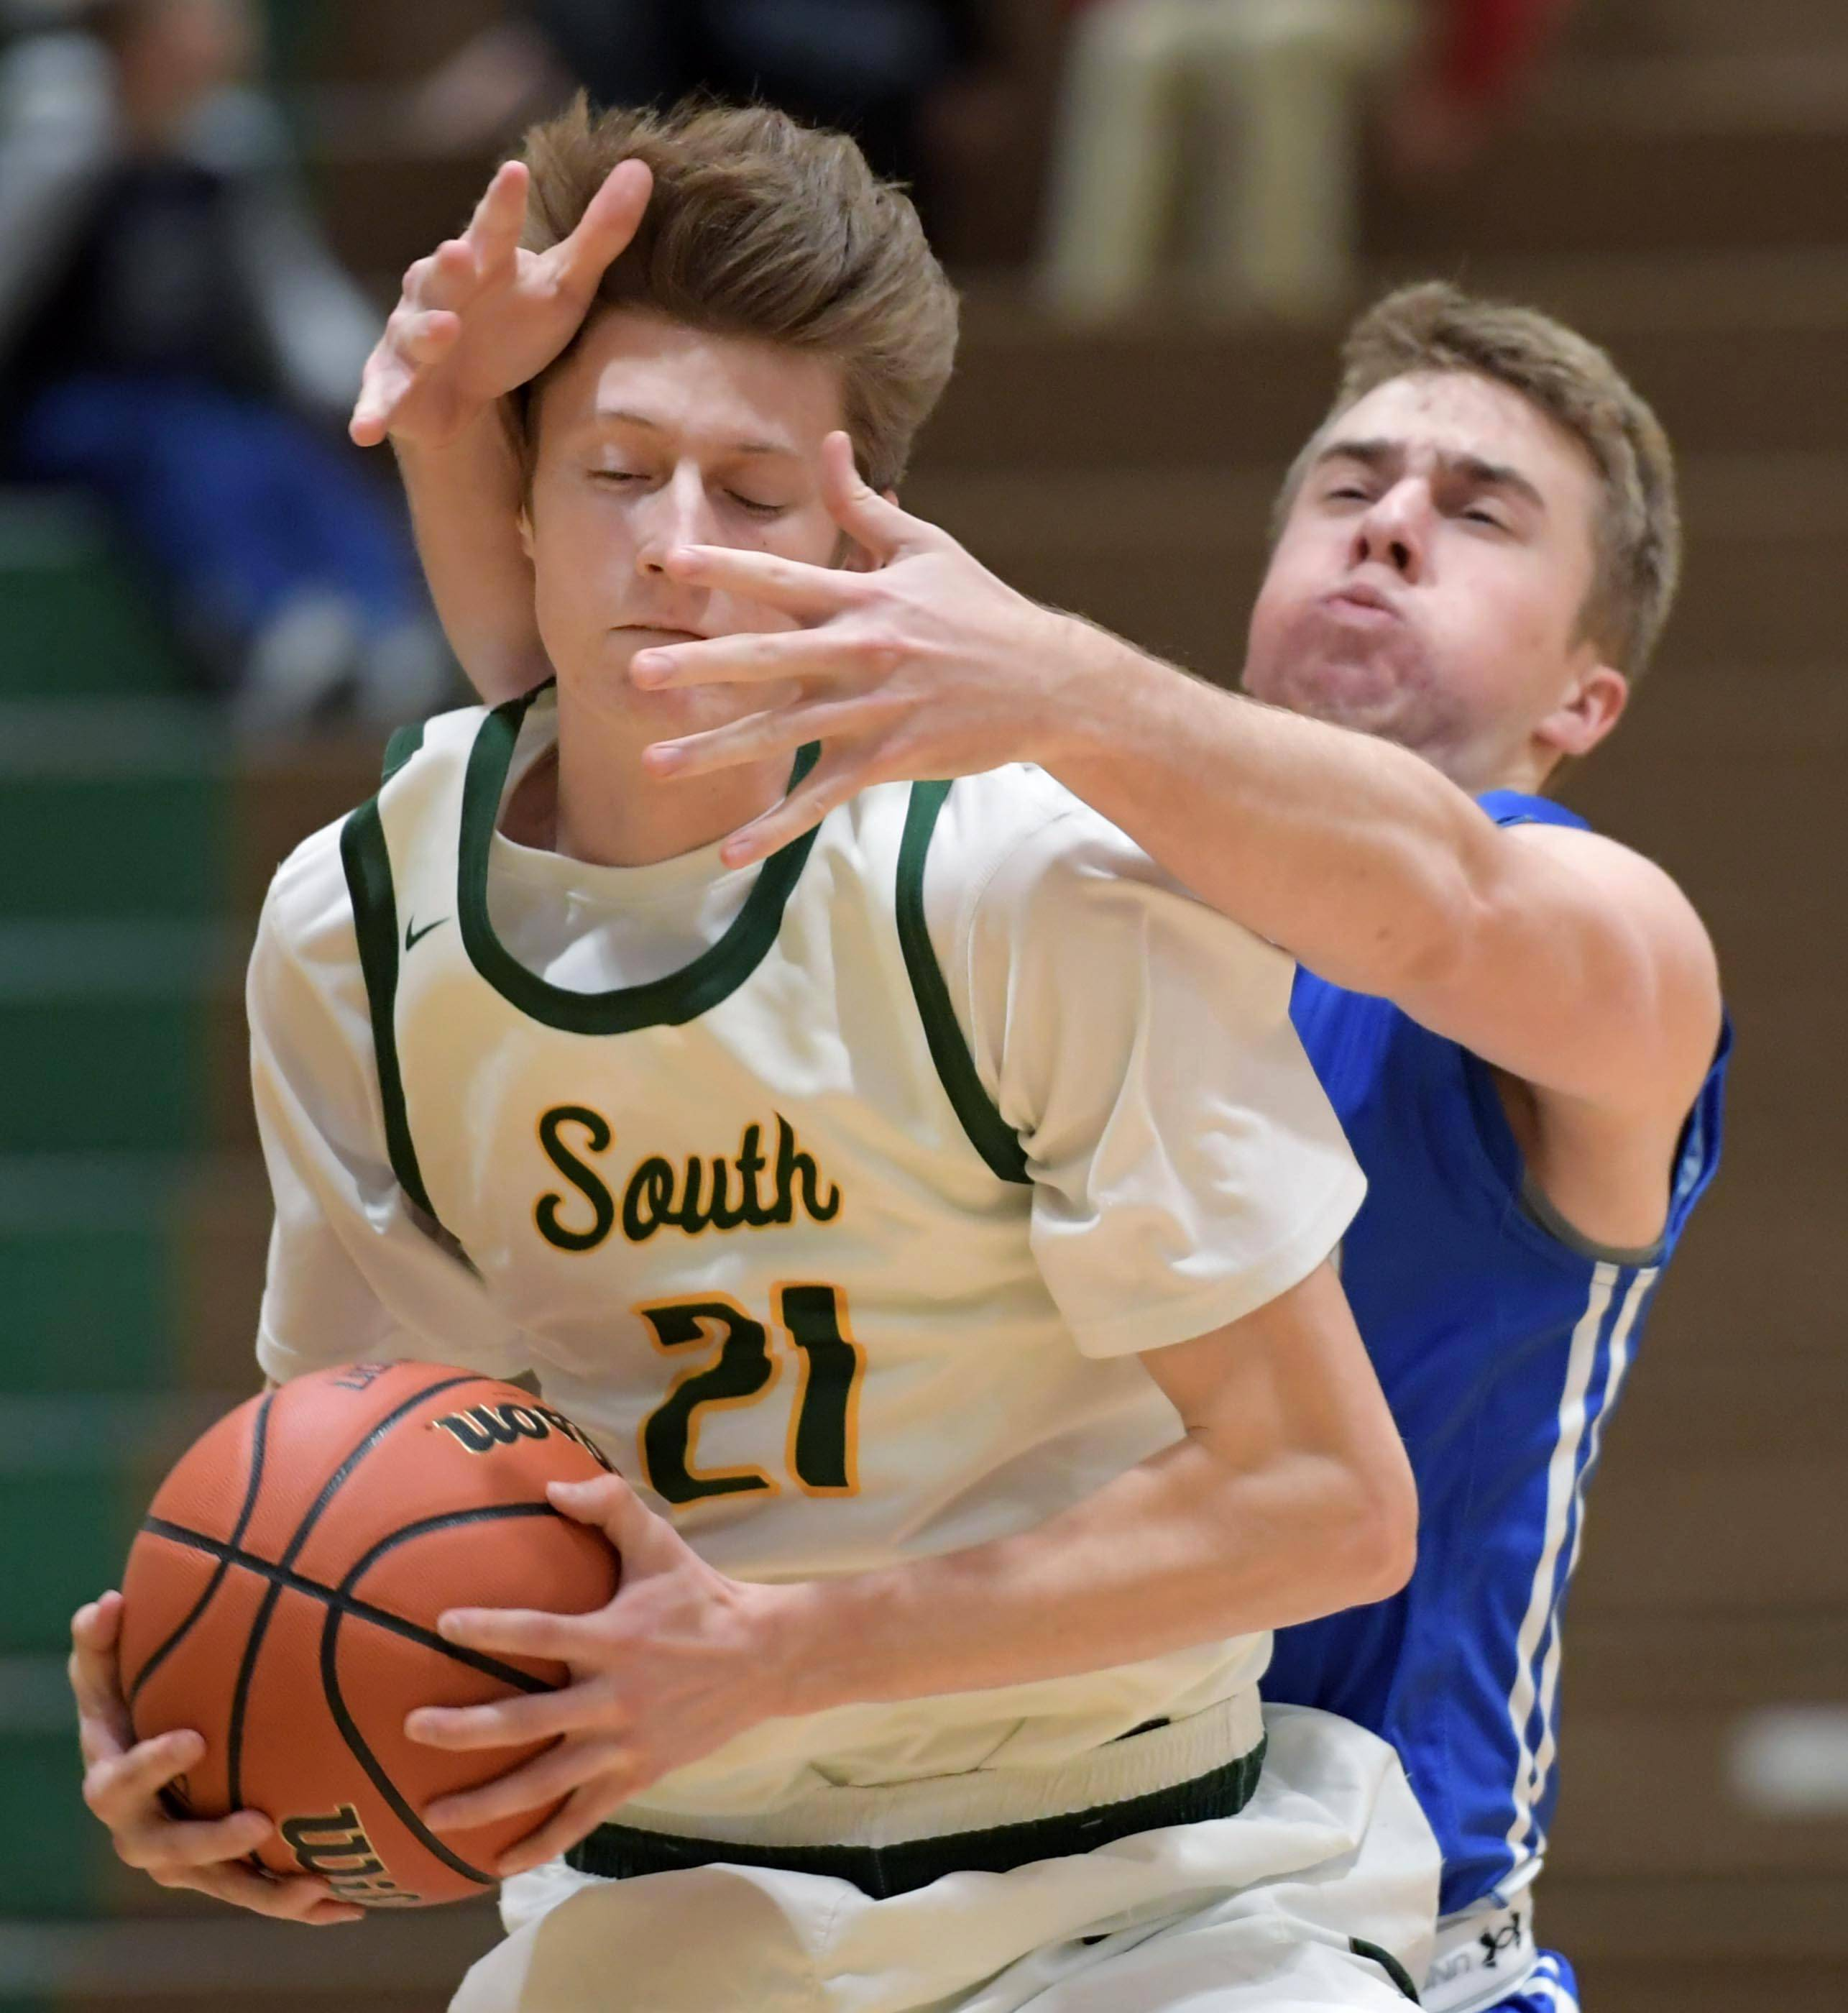 Burlington Central's Caden Scott's hands fly around the face of Crystal Lake South's Matthew Reall Wednesday in Crystal Lake.